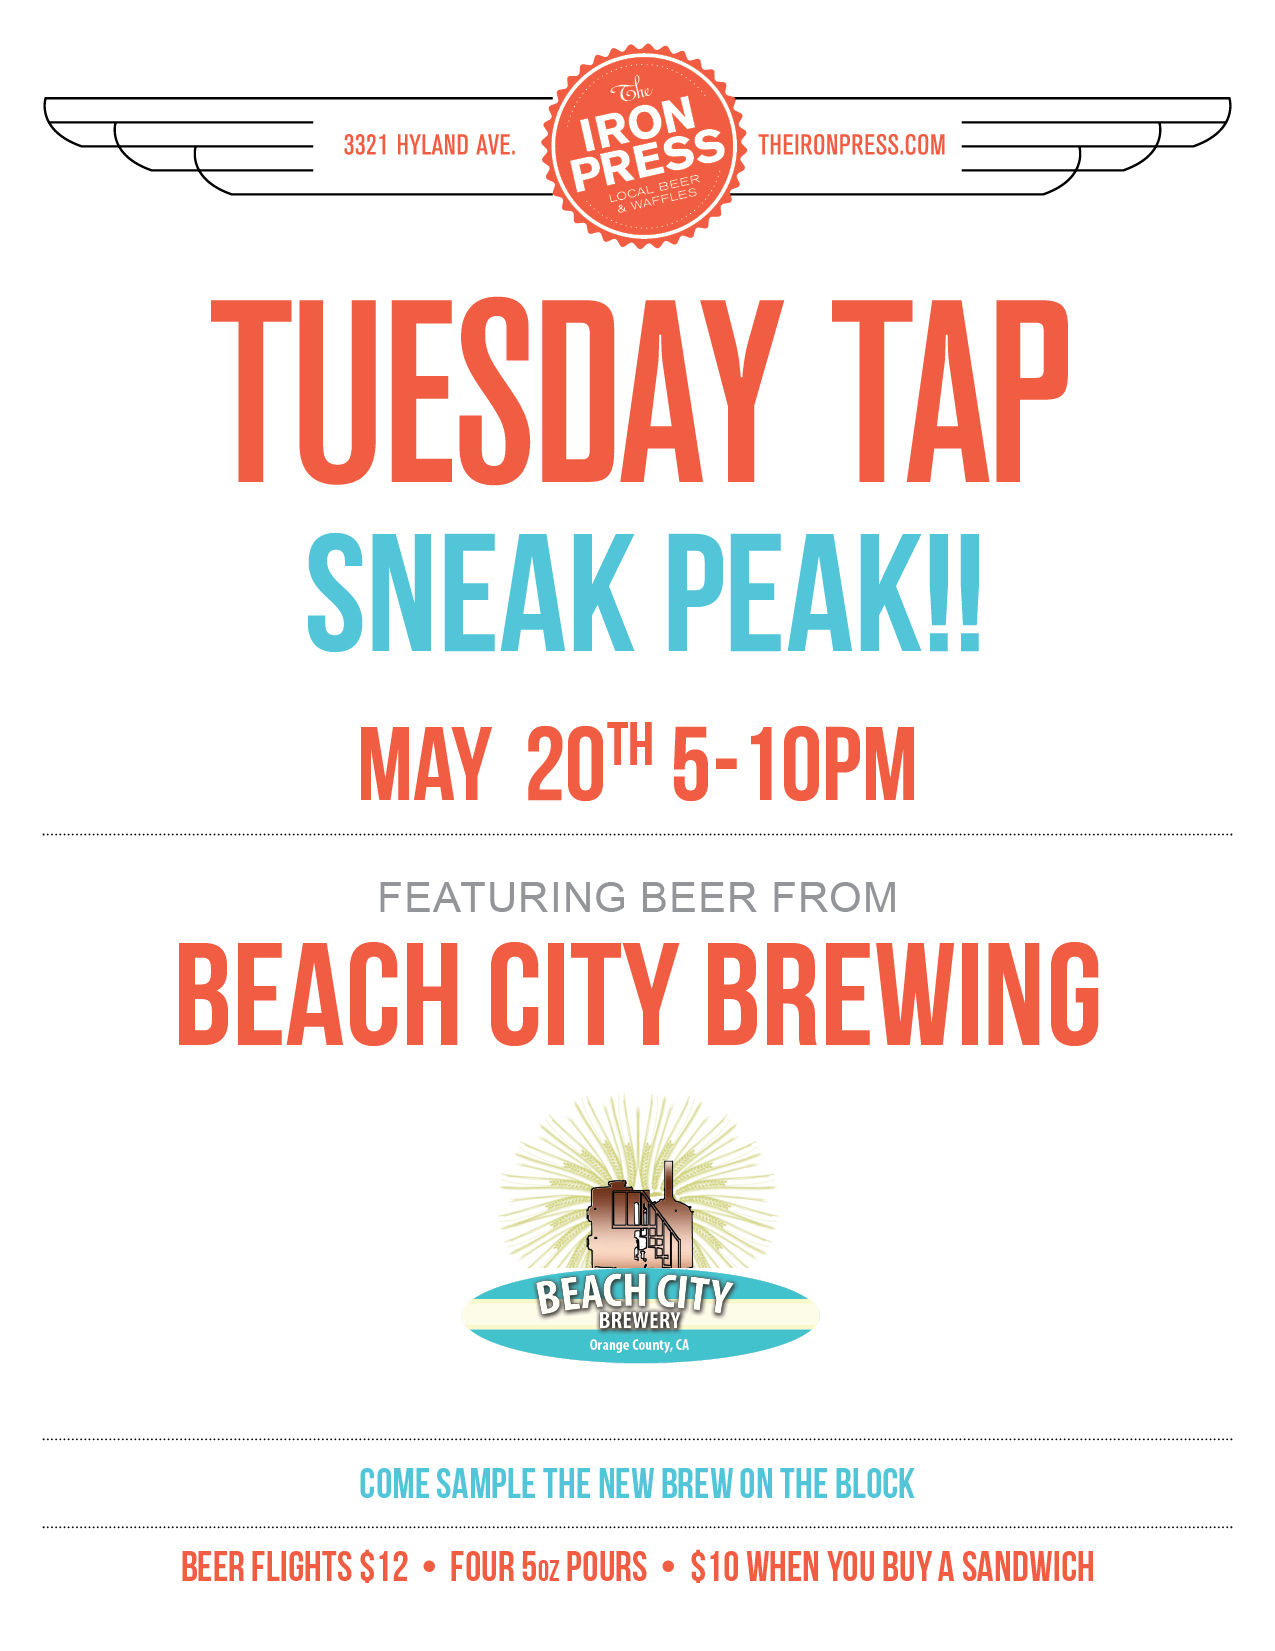 Beach City Brewery x The Iron Press